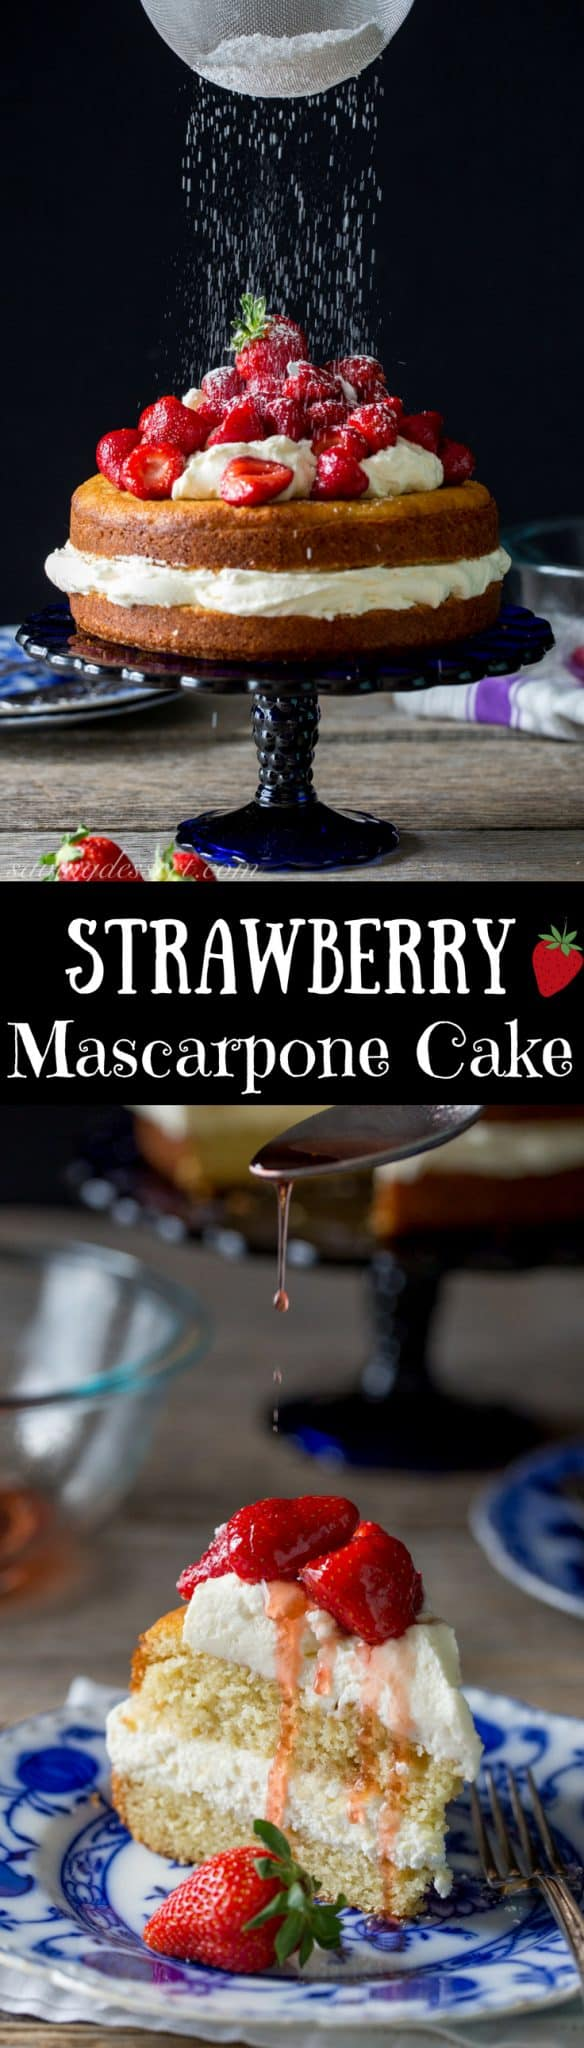 Strawberry Mascarpone Cake - a simple lemon scented cake filled with mascarpone cream and topped with Grand Marnier soaked strawberries. www.savingdessert.com Grand Marnier | Strawberries | strawberry cake | mascarpone | lemon cake | dessert | cake